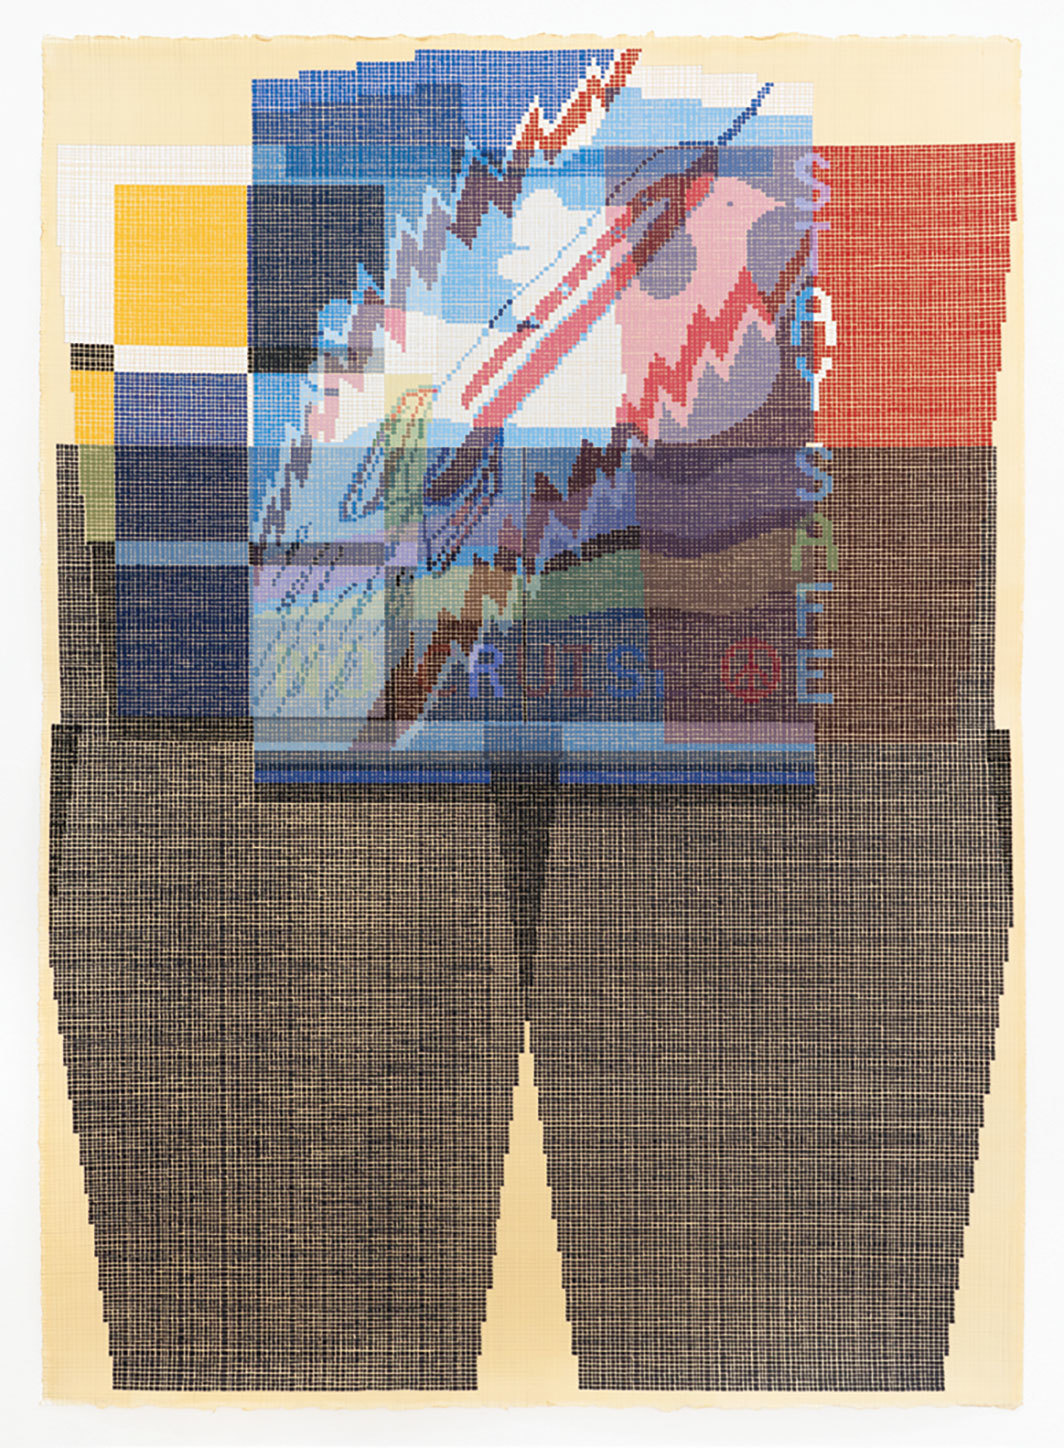 "Ellen Lesperance, Stay Safe, 2018, gouache and graphite on tea-stained paper, 42 × 29 1⁄2""."